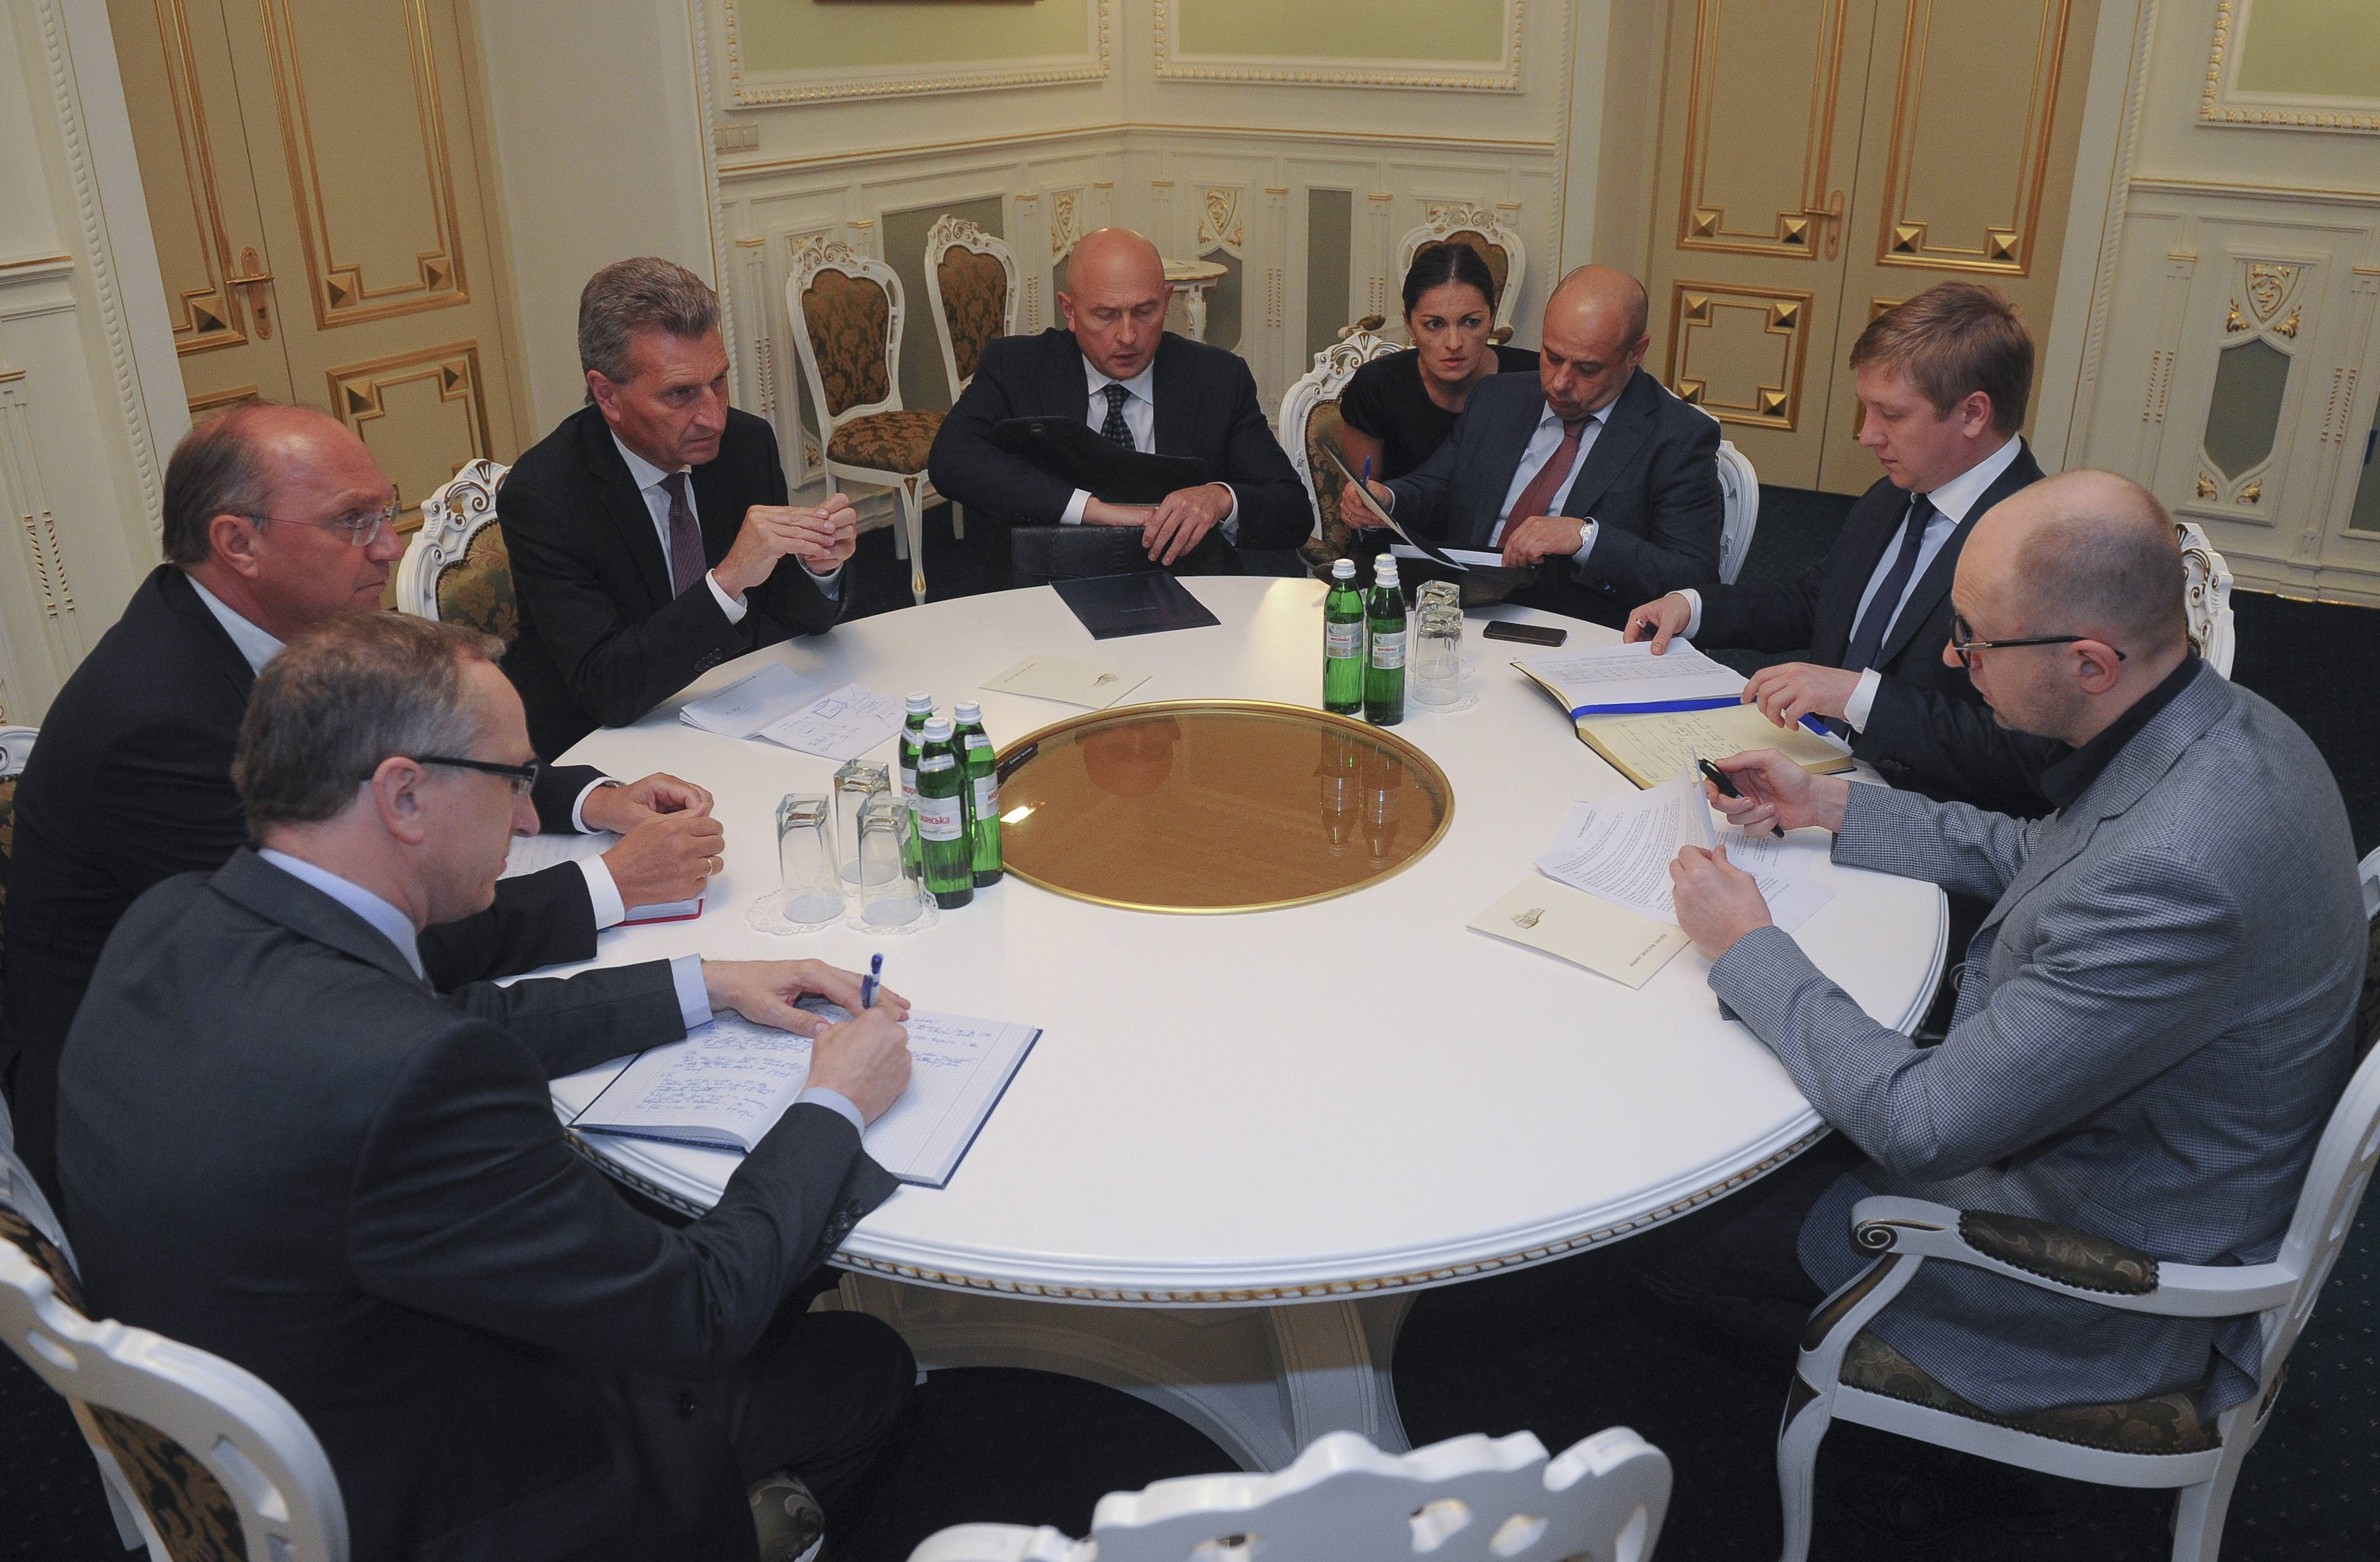 Energy Commissioner Guenter Oettinger, third left, talks with Ukrainian Prime Minister Arseniy Yatsenyuk, right, and his ministers at a round table discussion in the Ukrainian Cabinet in Kiev, Ukraine.